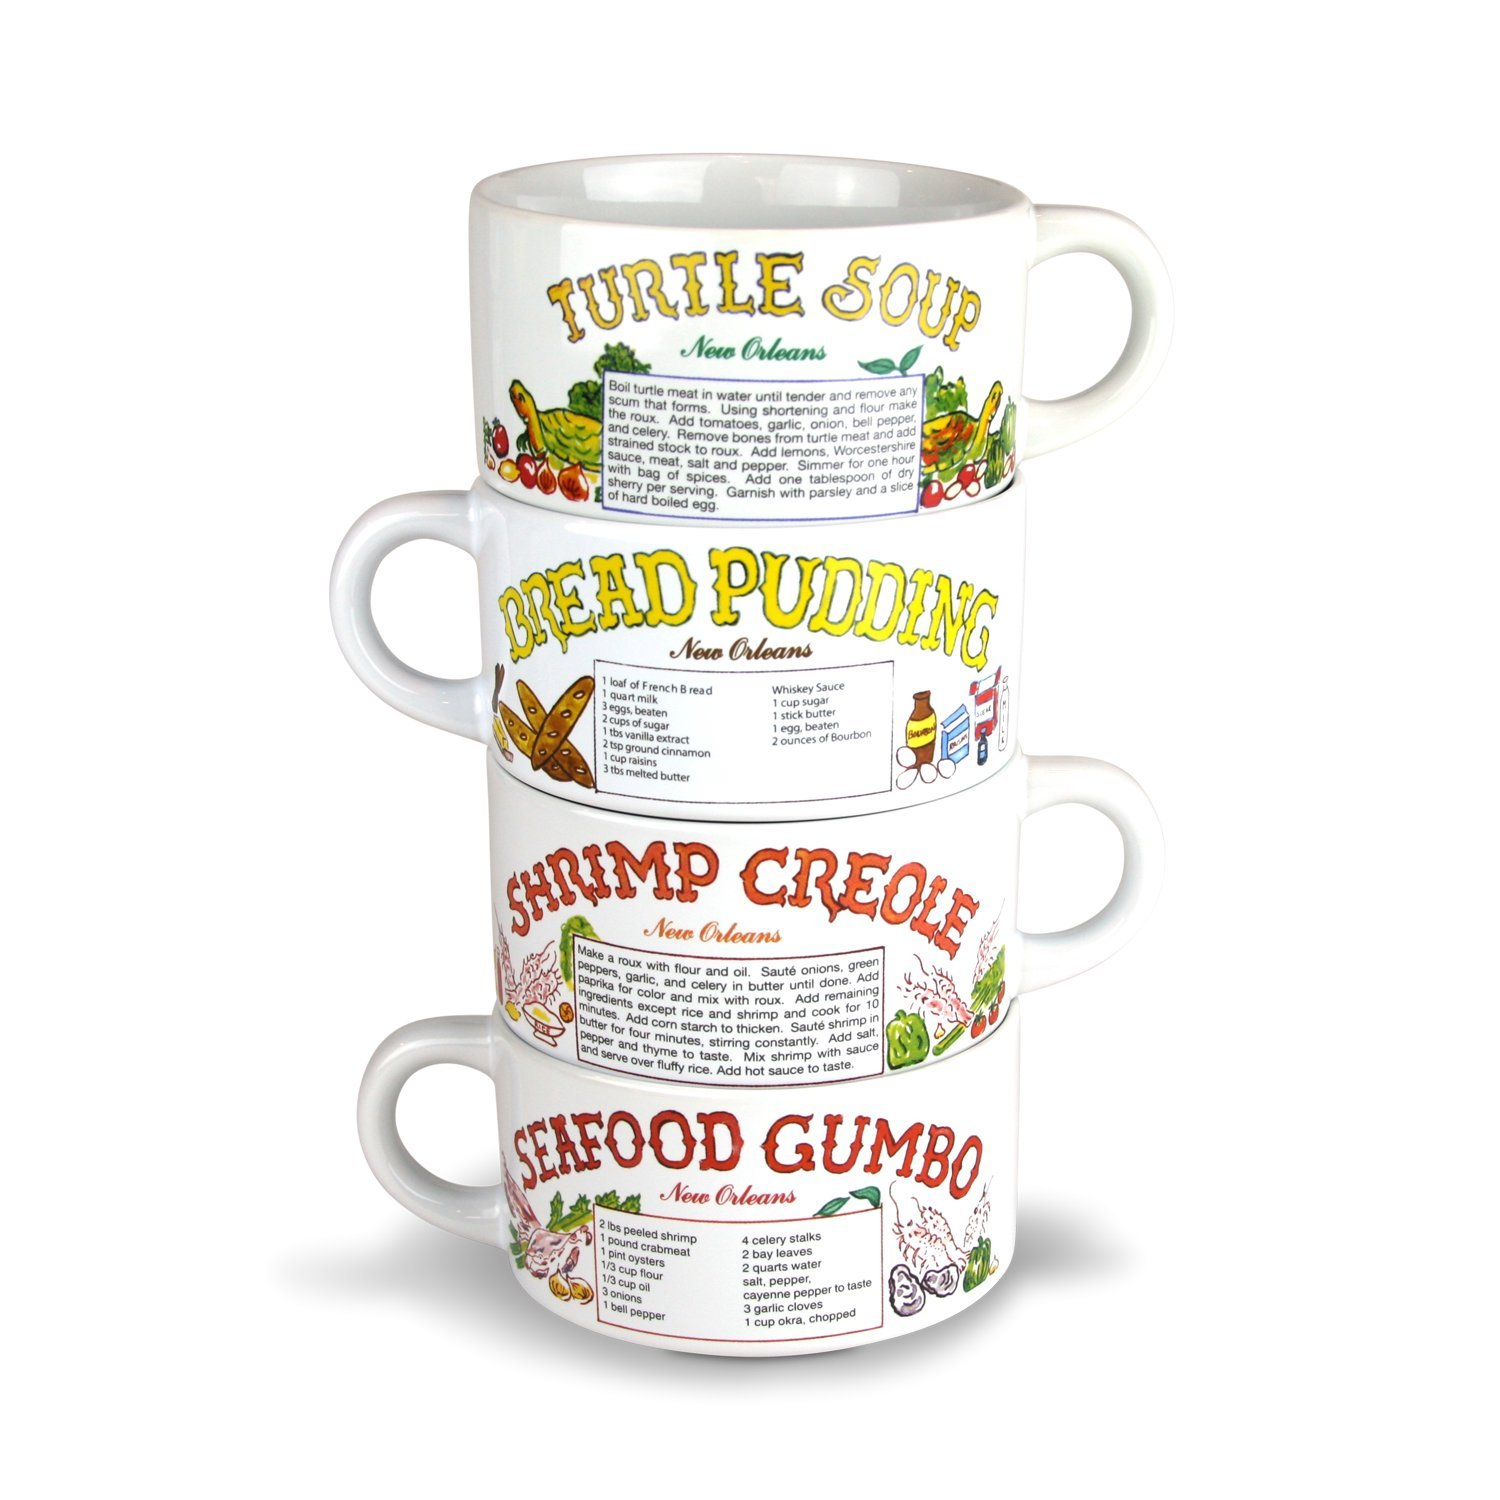 Recipe Gumbo Bowl Set of 4 -Turtle Soup Bread Pudding Seafood Gumbo Shrimp Creole